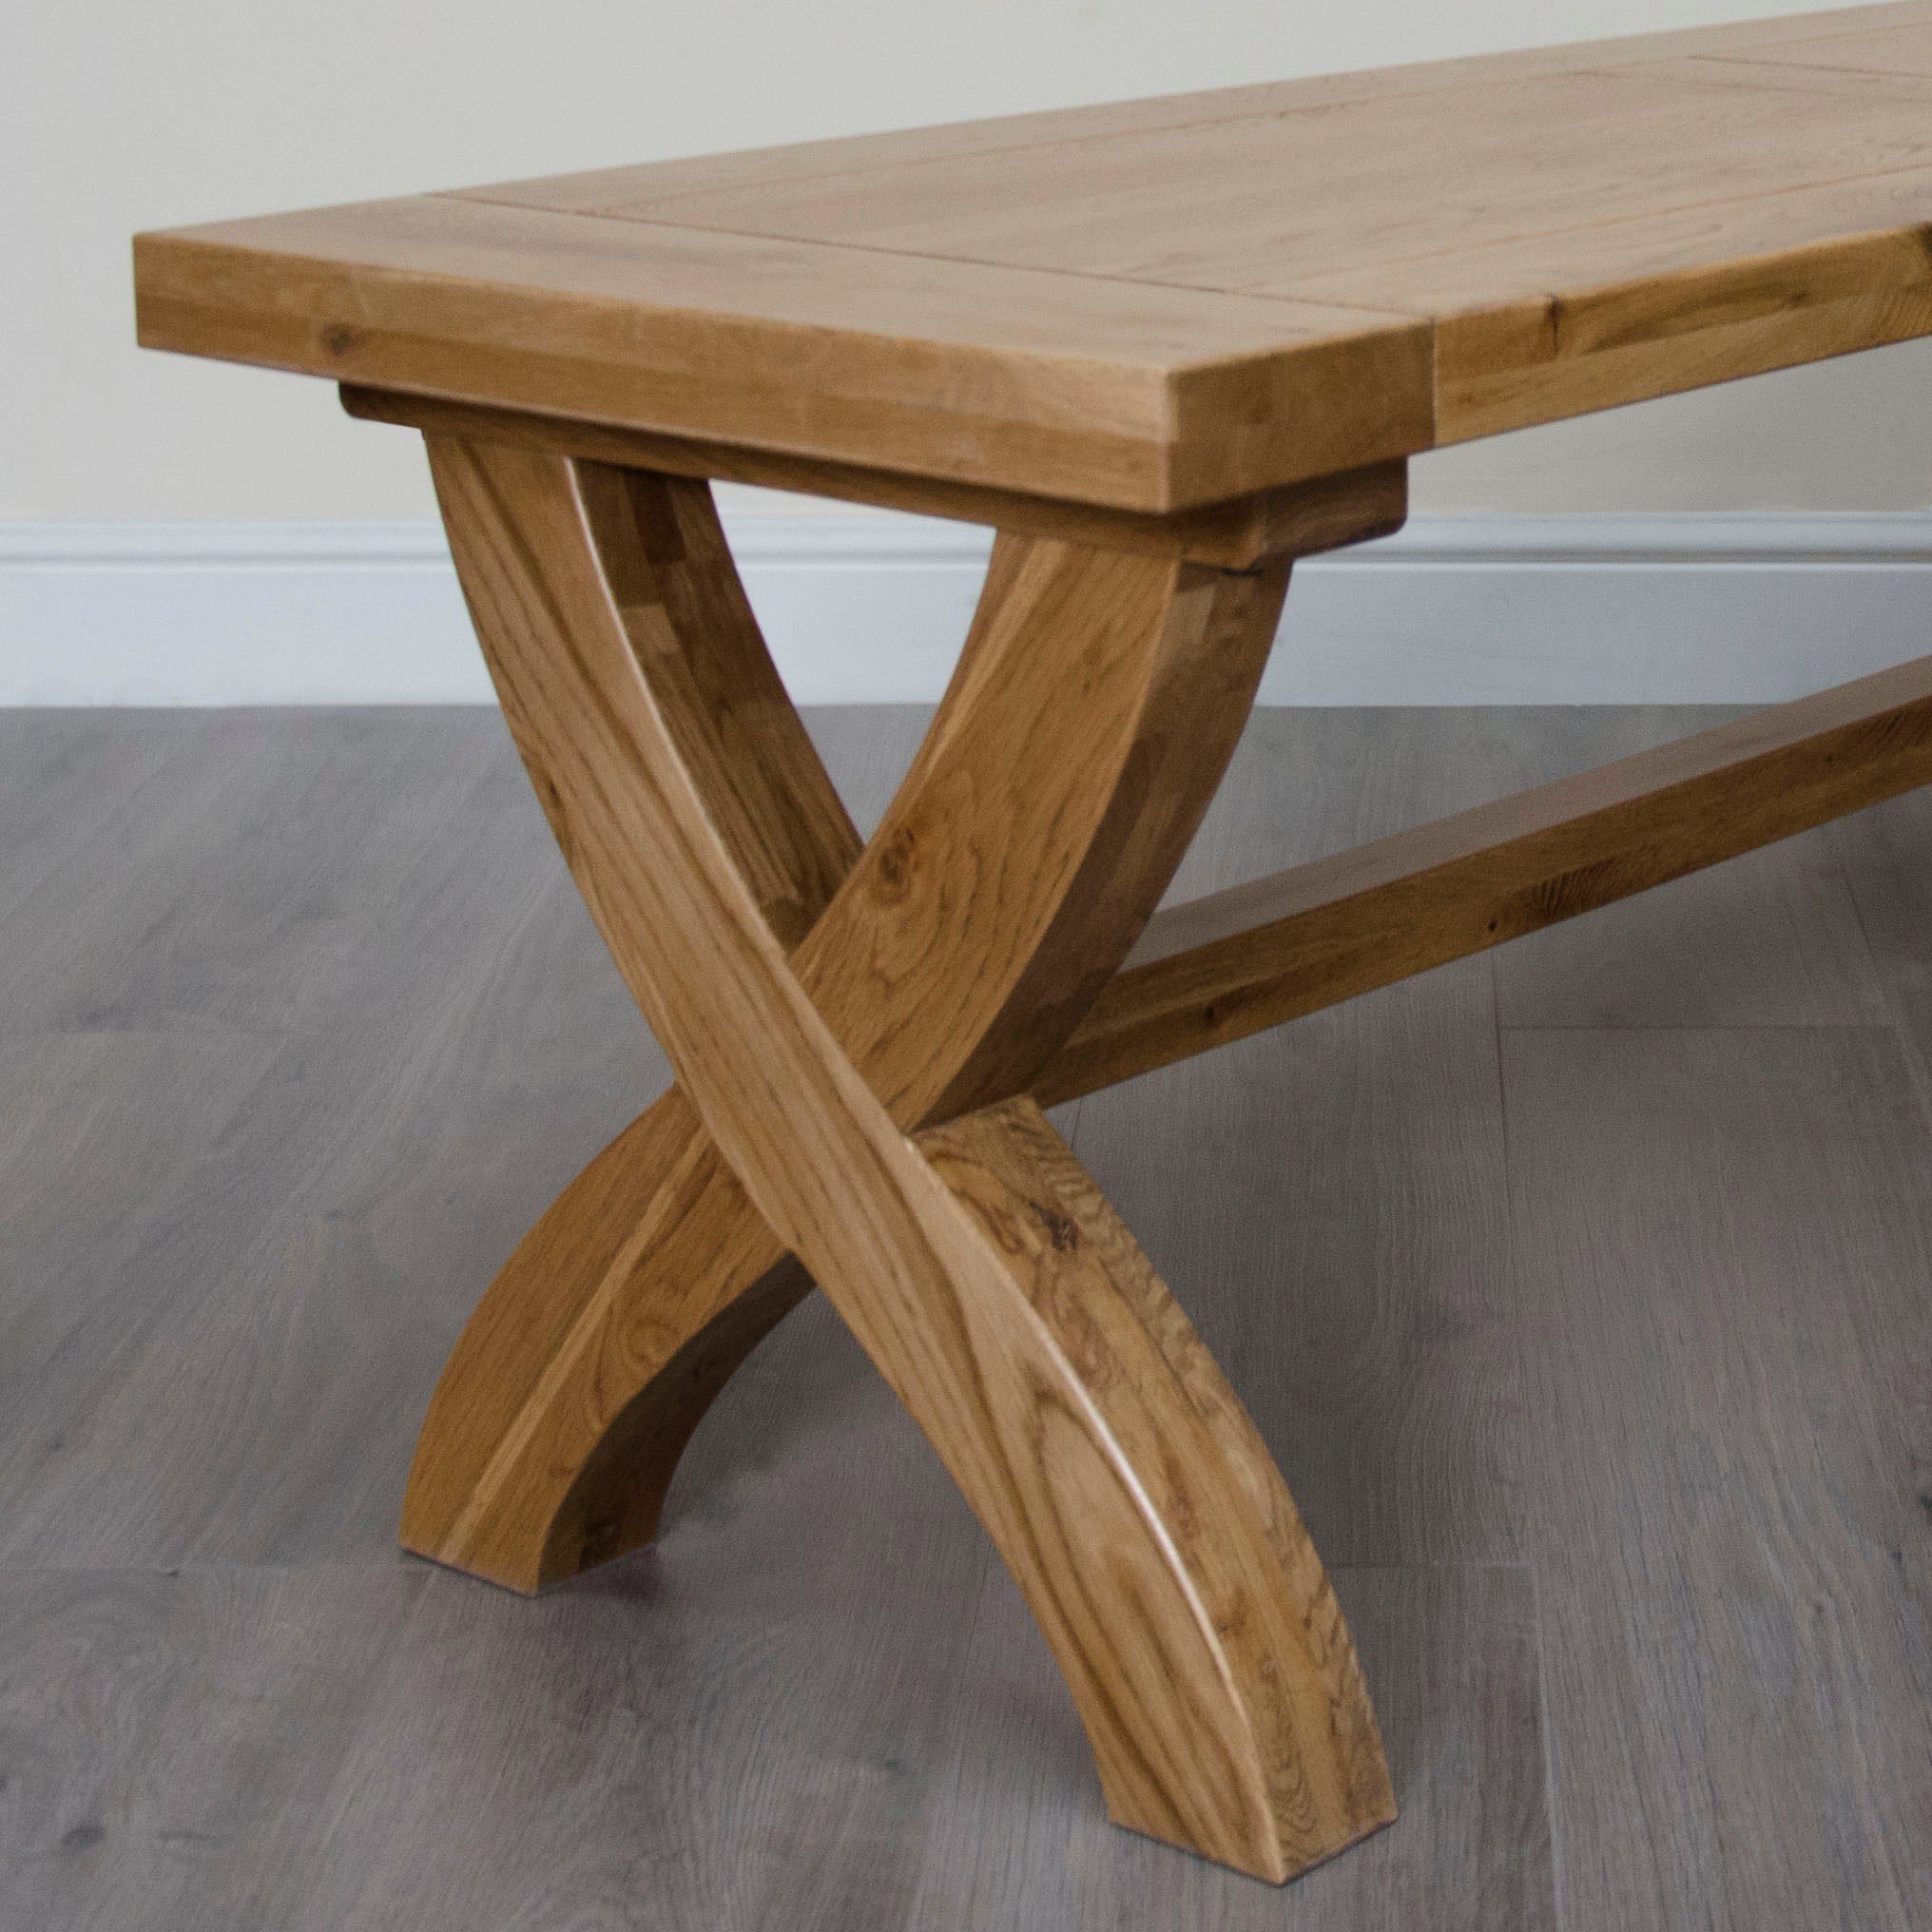 Melford solid oak bench with panelled top and cross x style leg detail with trestle bar